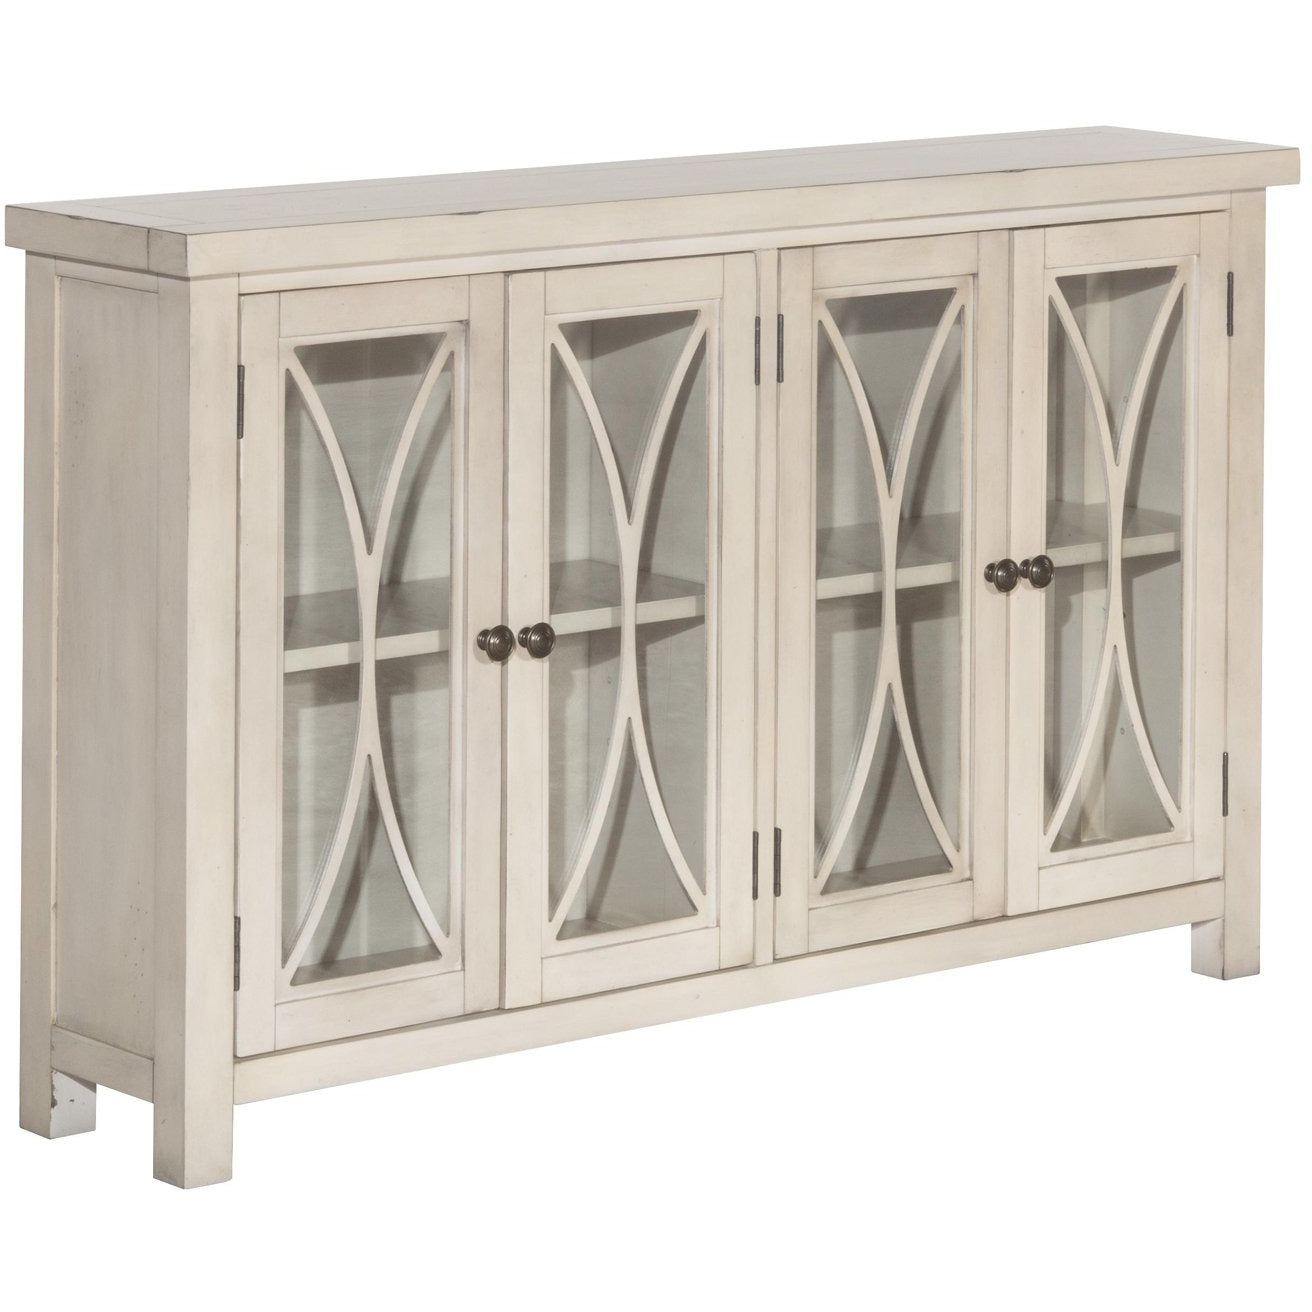 Bayside Accent Chest IV